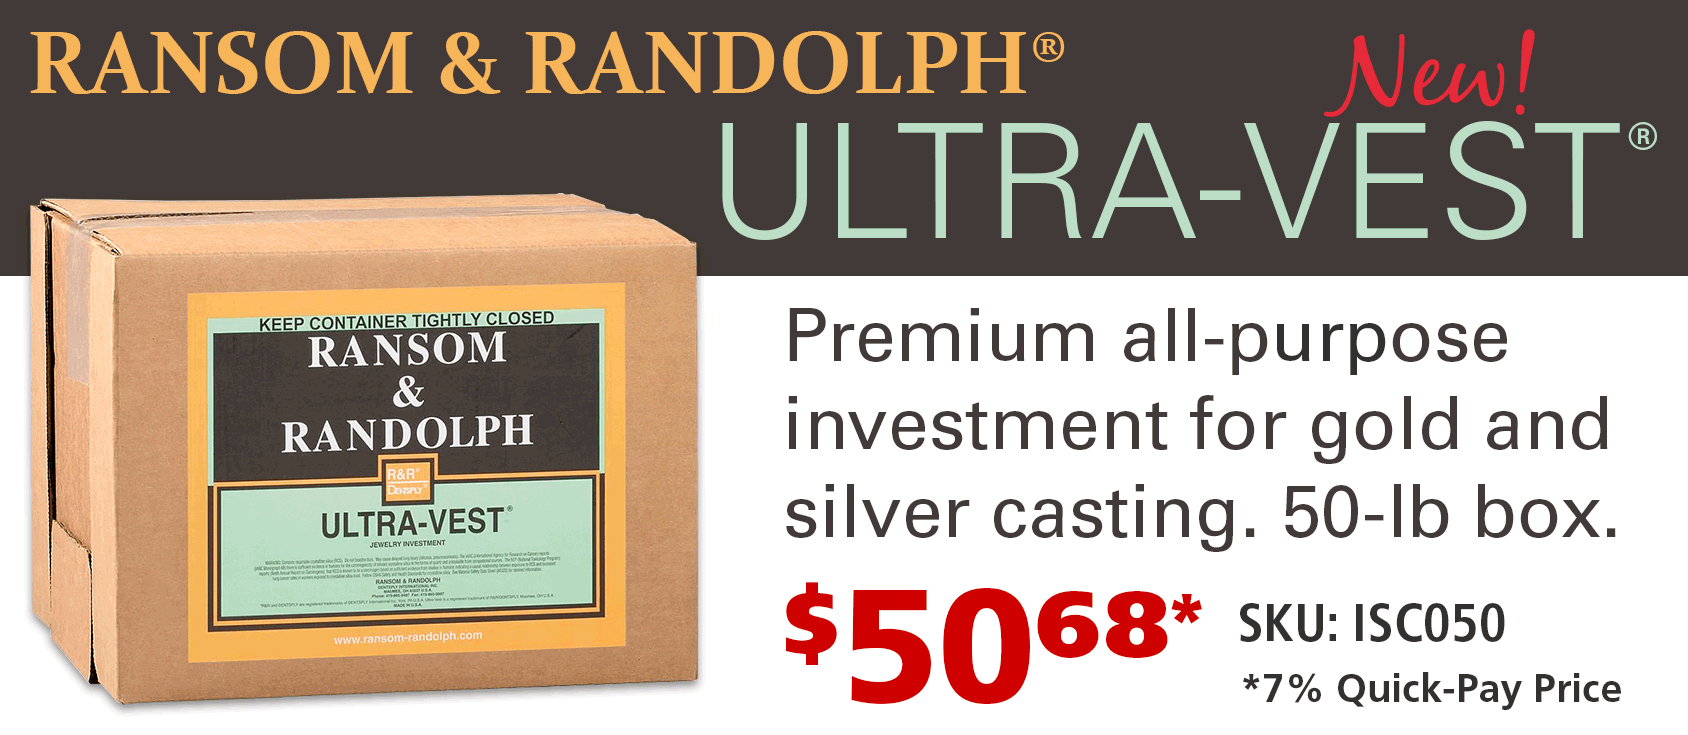 Ransom and Randolph Ultra-Vest Investment